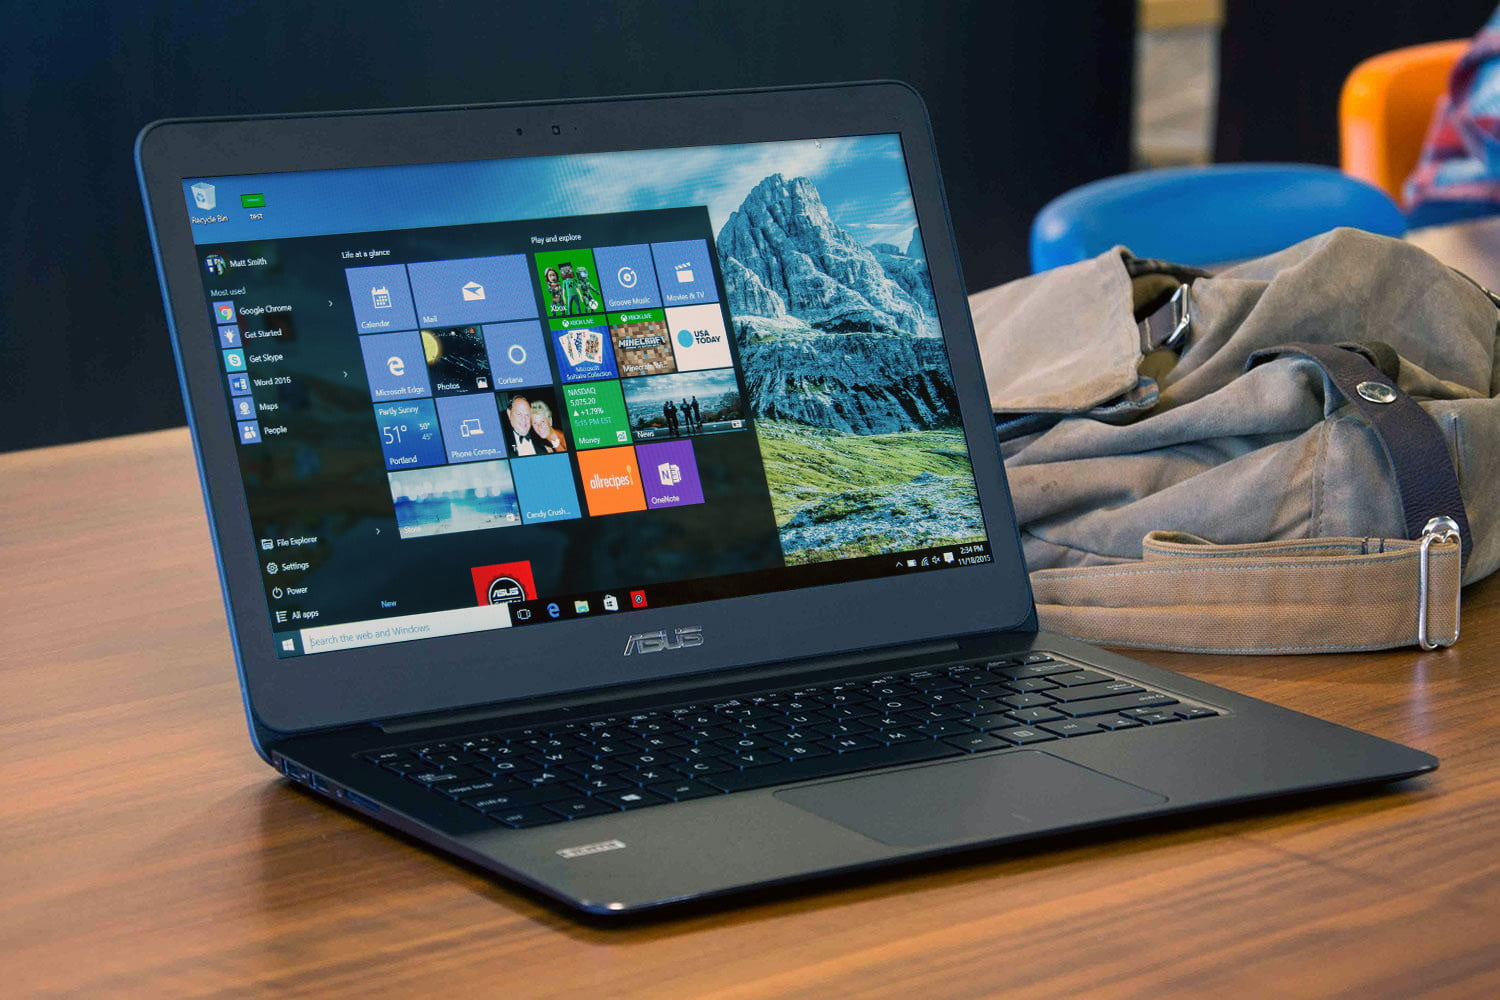 How To Change Your Windows 10 Login Screen Background Wallpaper